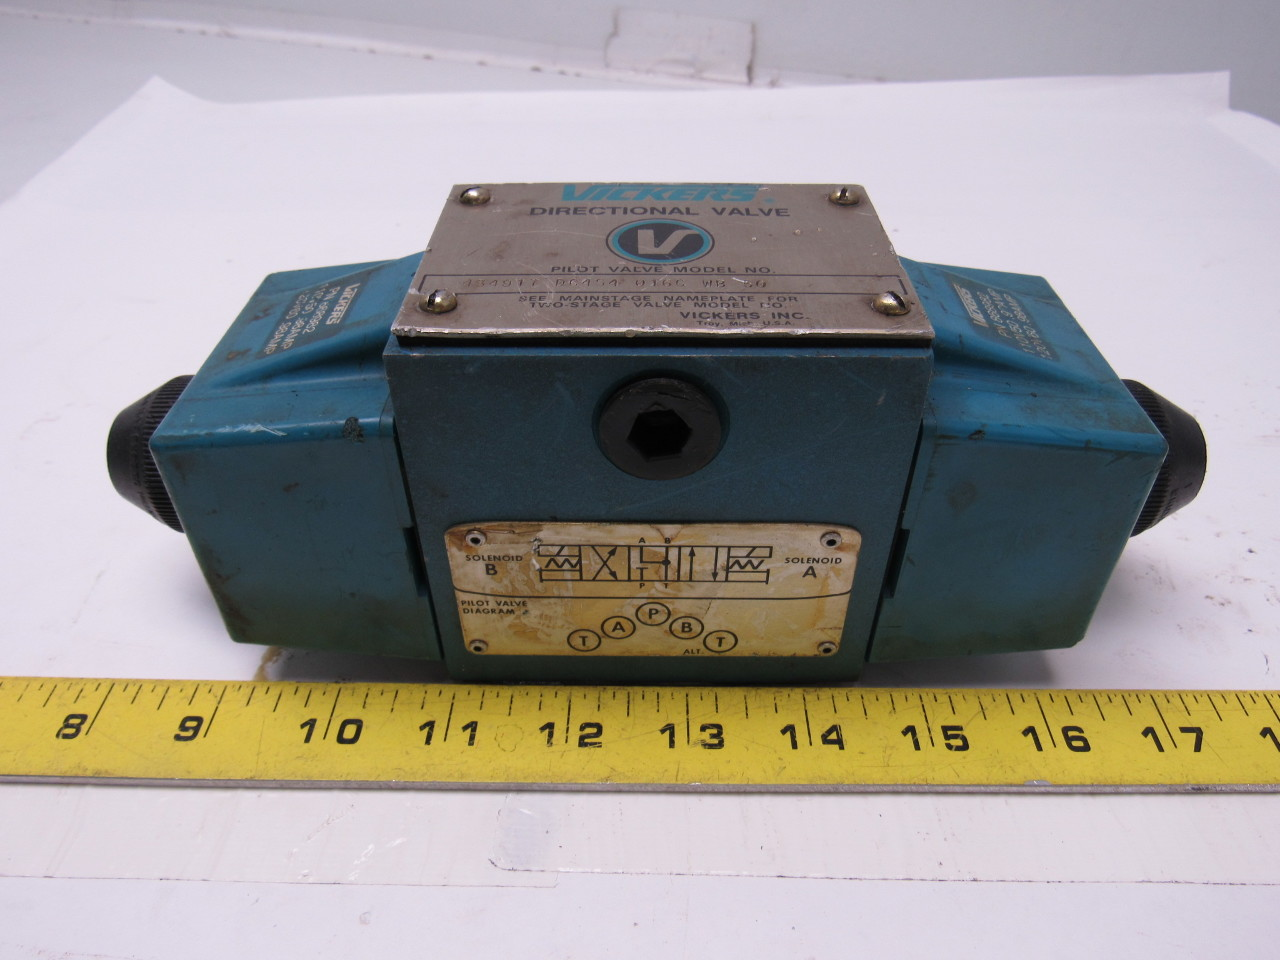 Vickers 434917 DG4S4 016C WB 50 Hydraulic Directional Control Valve